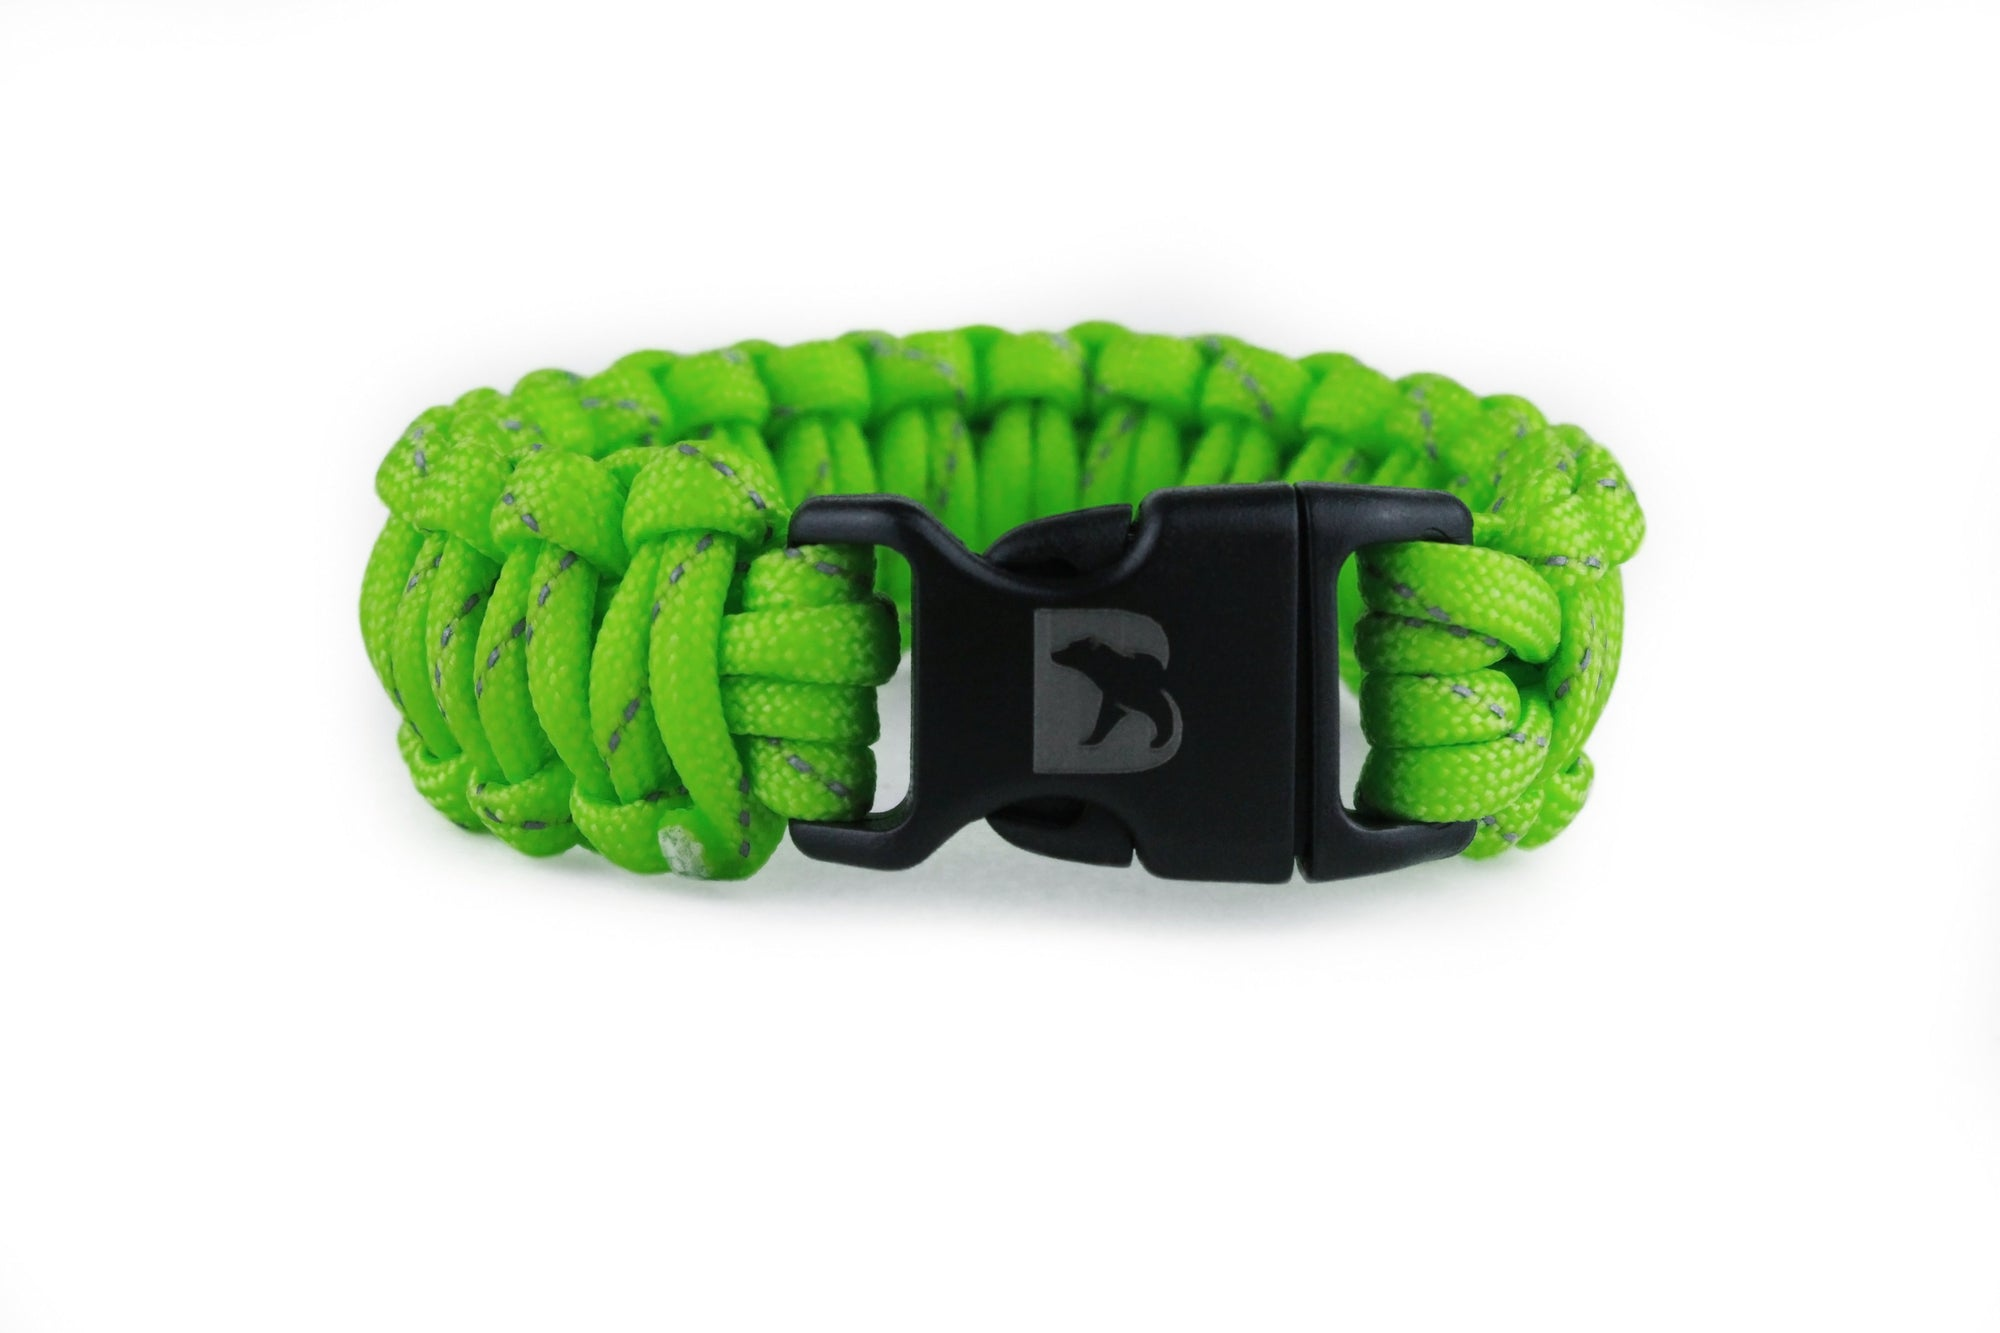 Reflective Flourescent Green Paracord Bracelet - Bearbottom Clothing